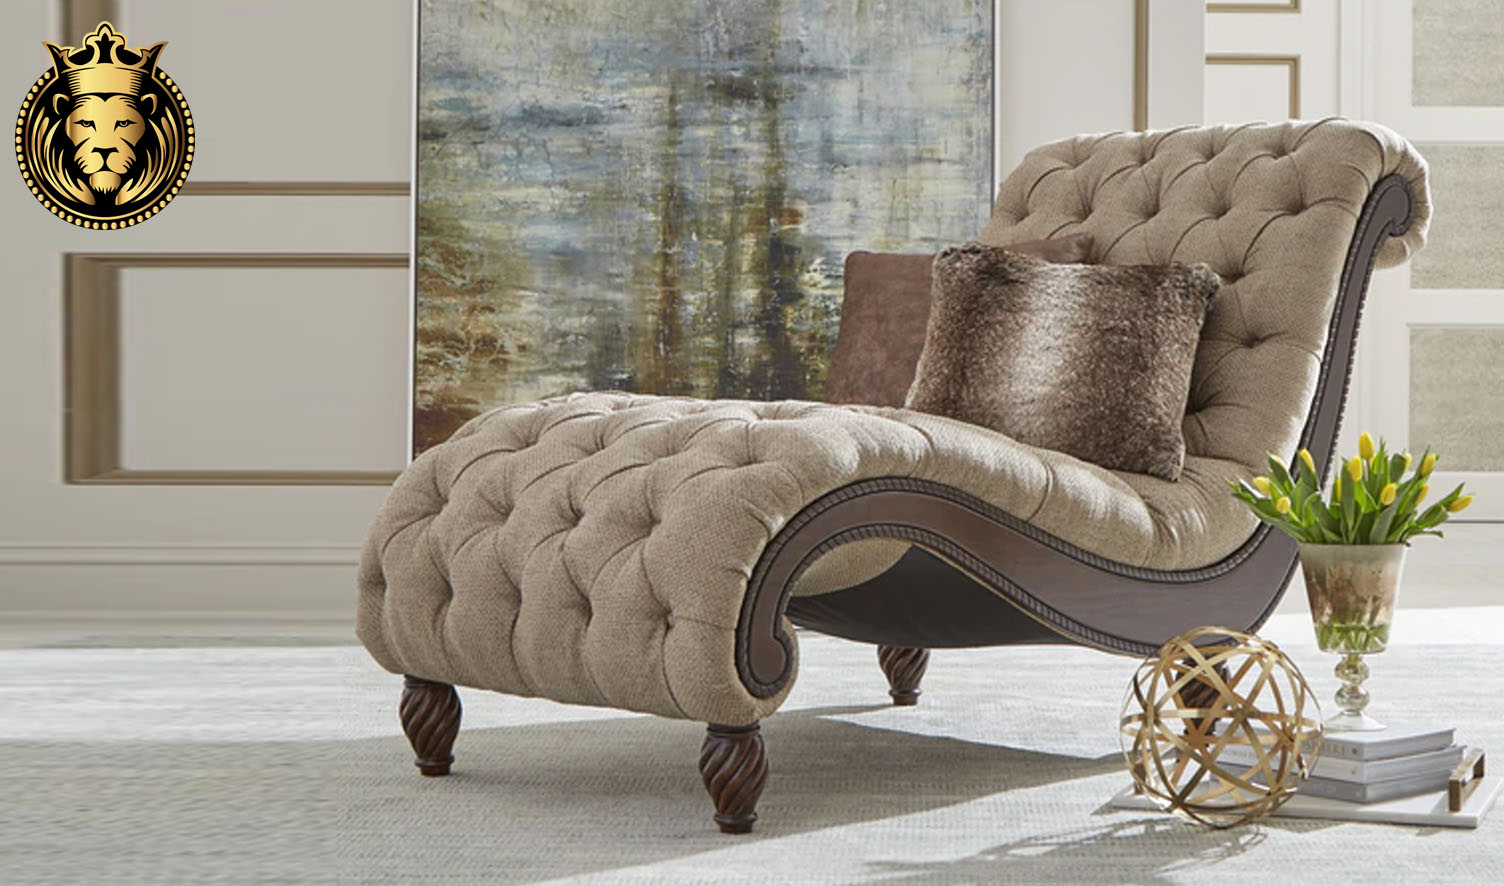 Classical Style Teak Wood Tufted Chaise Lounge